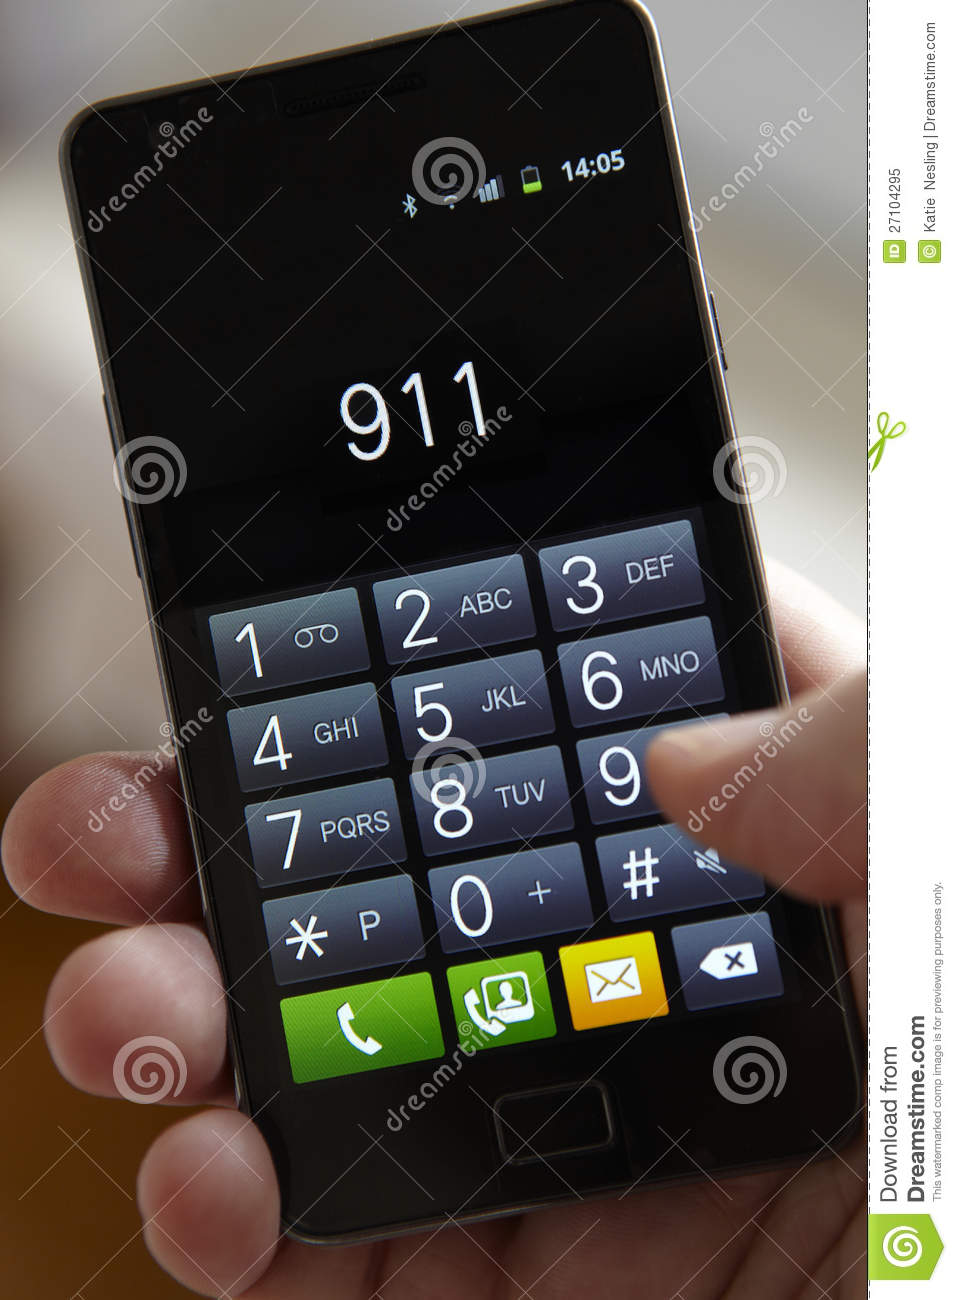 how to nit show mobile number when calling